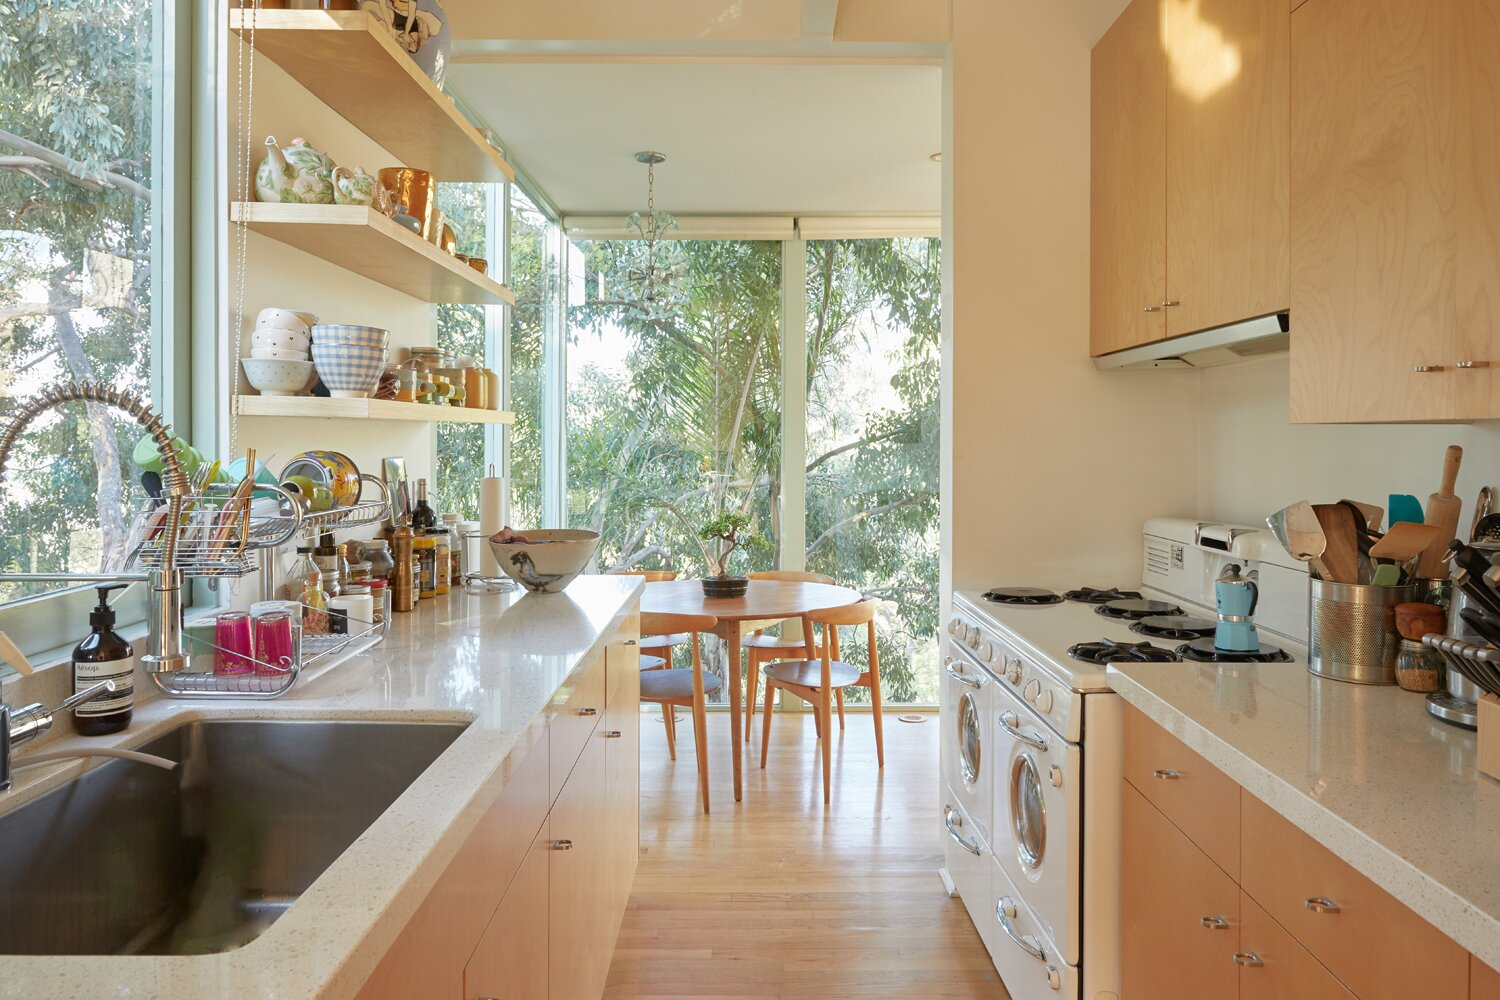 A galley-style kitchen extends from the dining space and connects back to the sunken sitting area at the opposite end.  Photo 6 of 17 in A Hilltop Midcentury Under the Hollywood Sign Seeks $3.6M